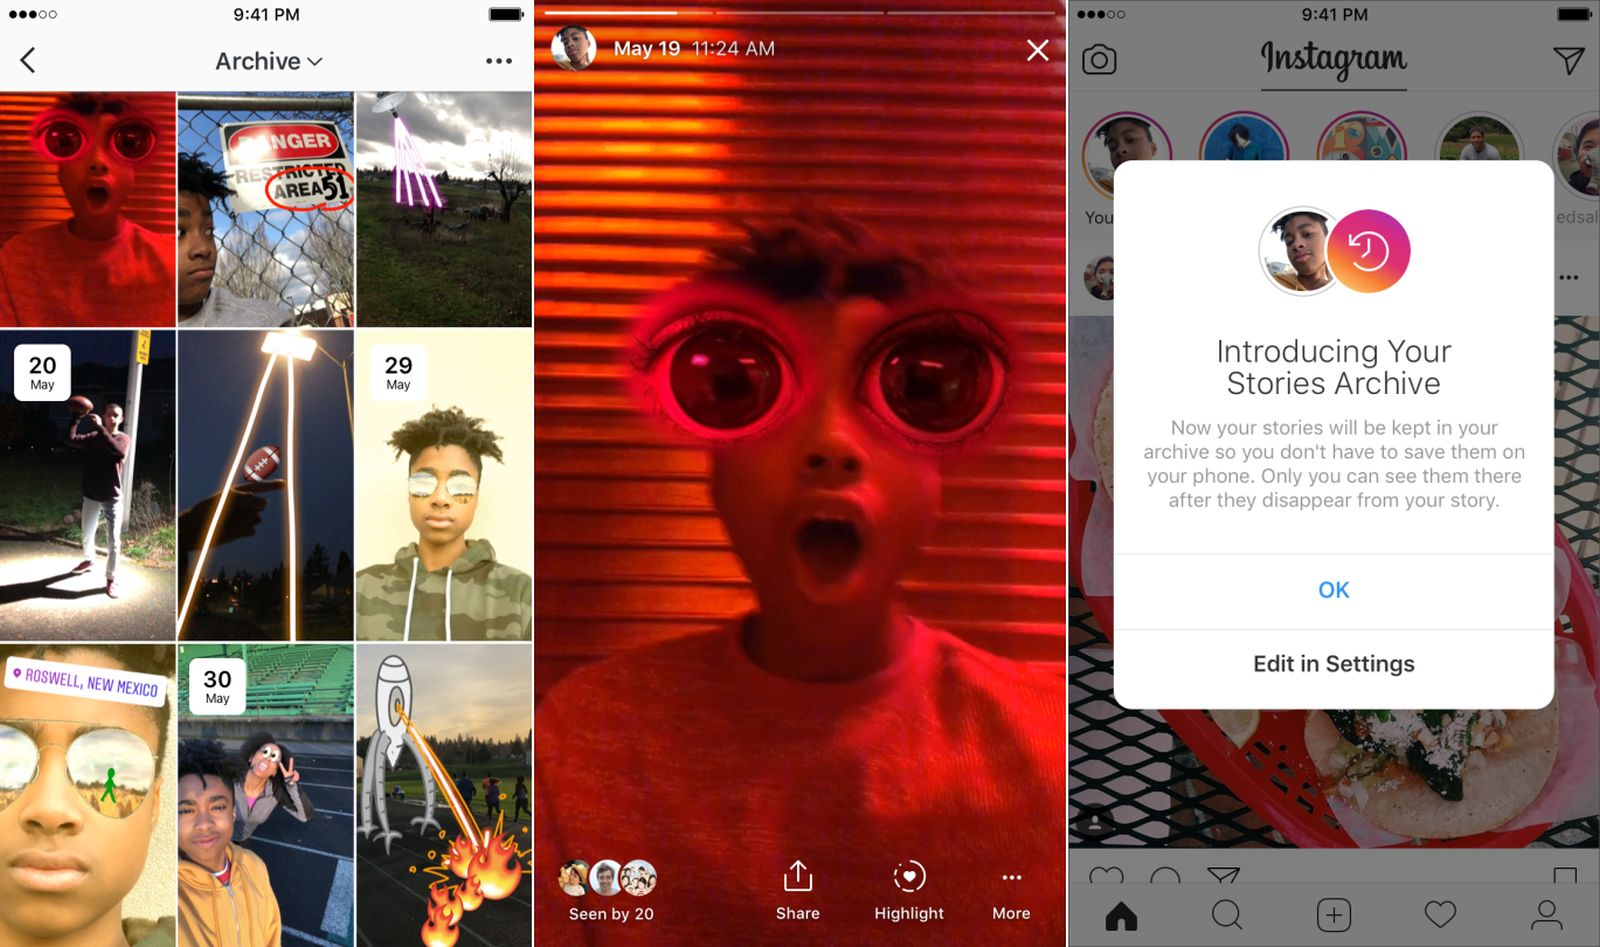 Instagram Introduces Private Archive To Automatically Save 24 Hour Stories